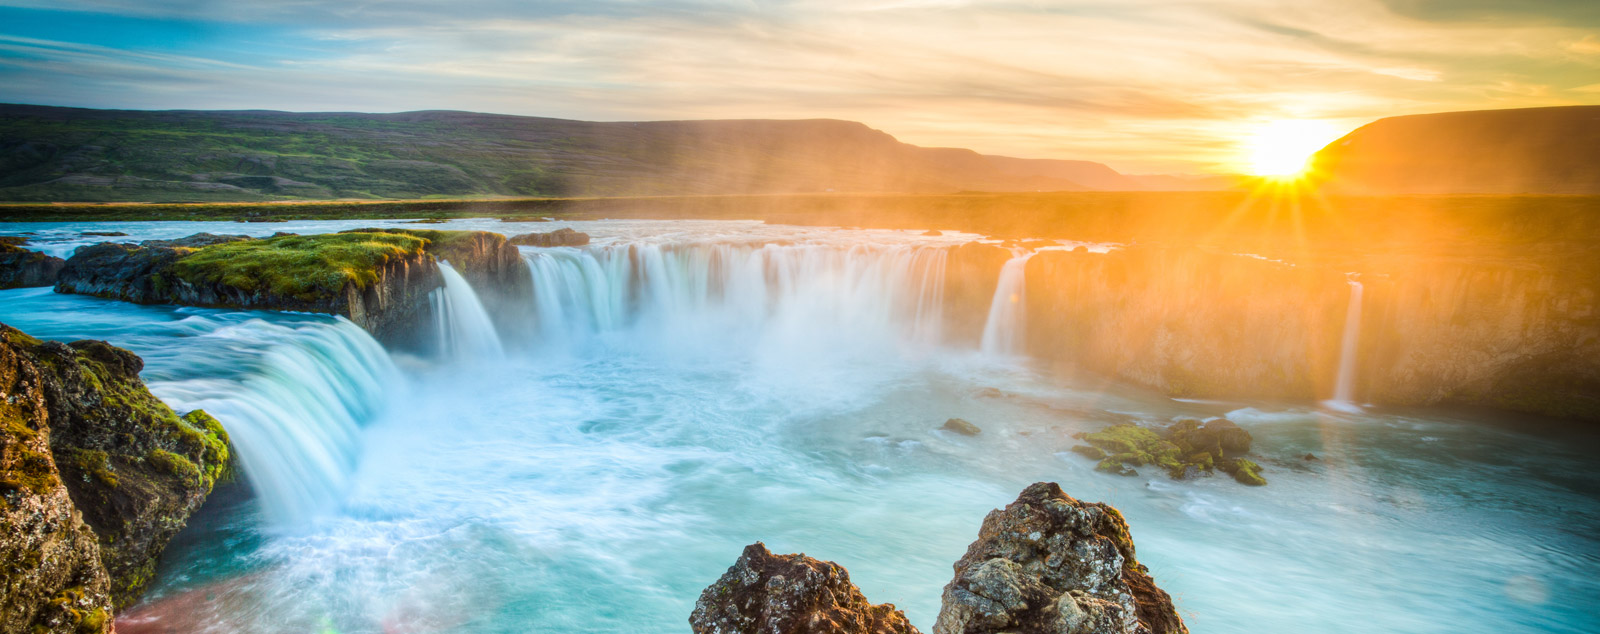 Banner of waterfall with setting sun behind